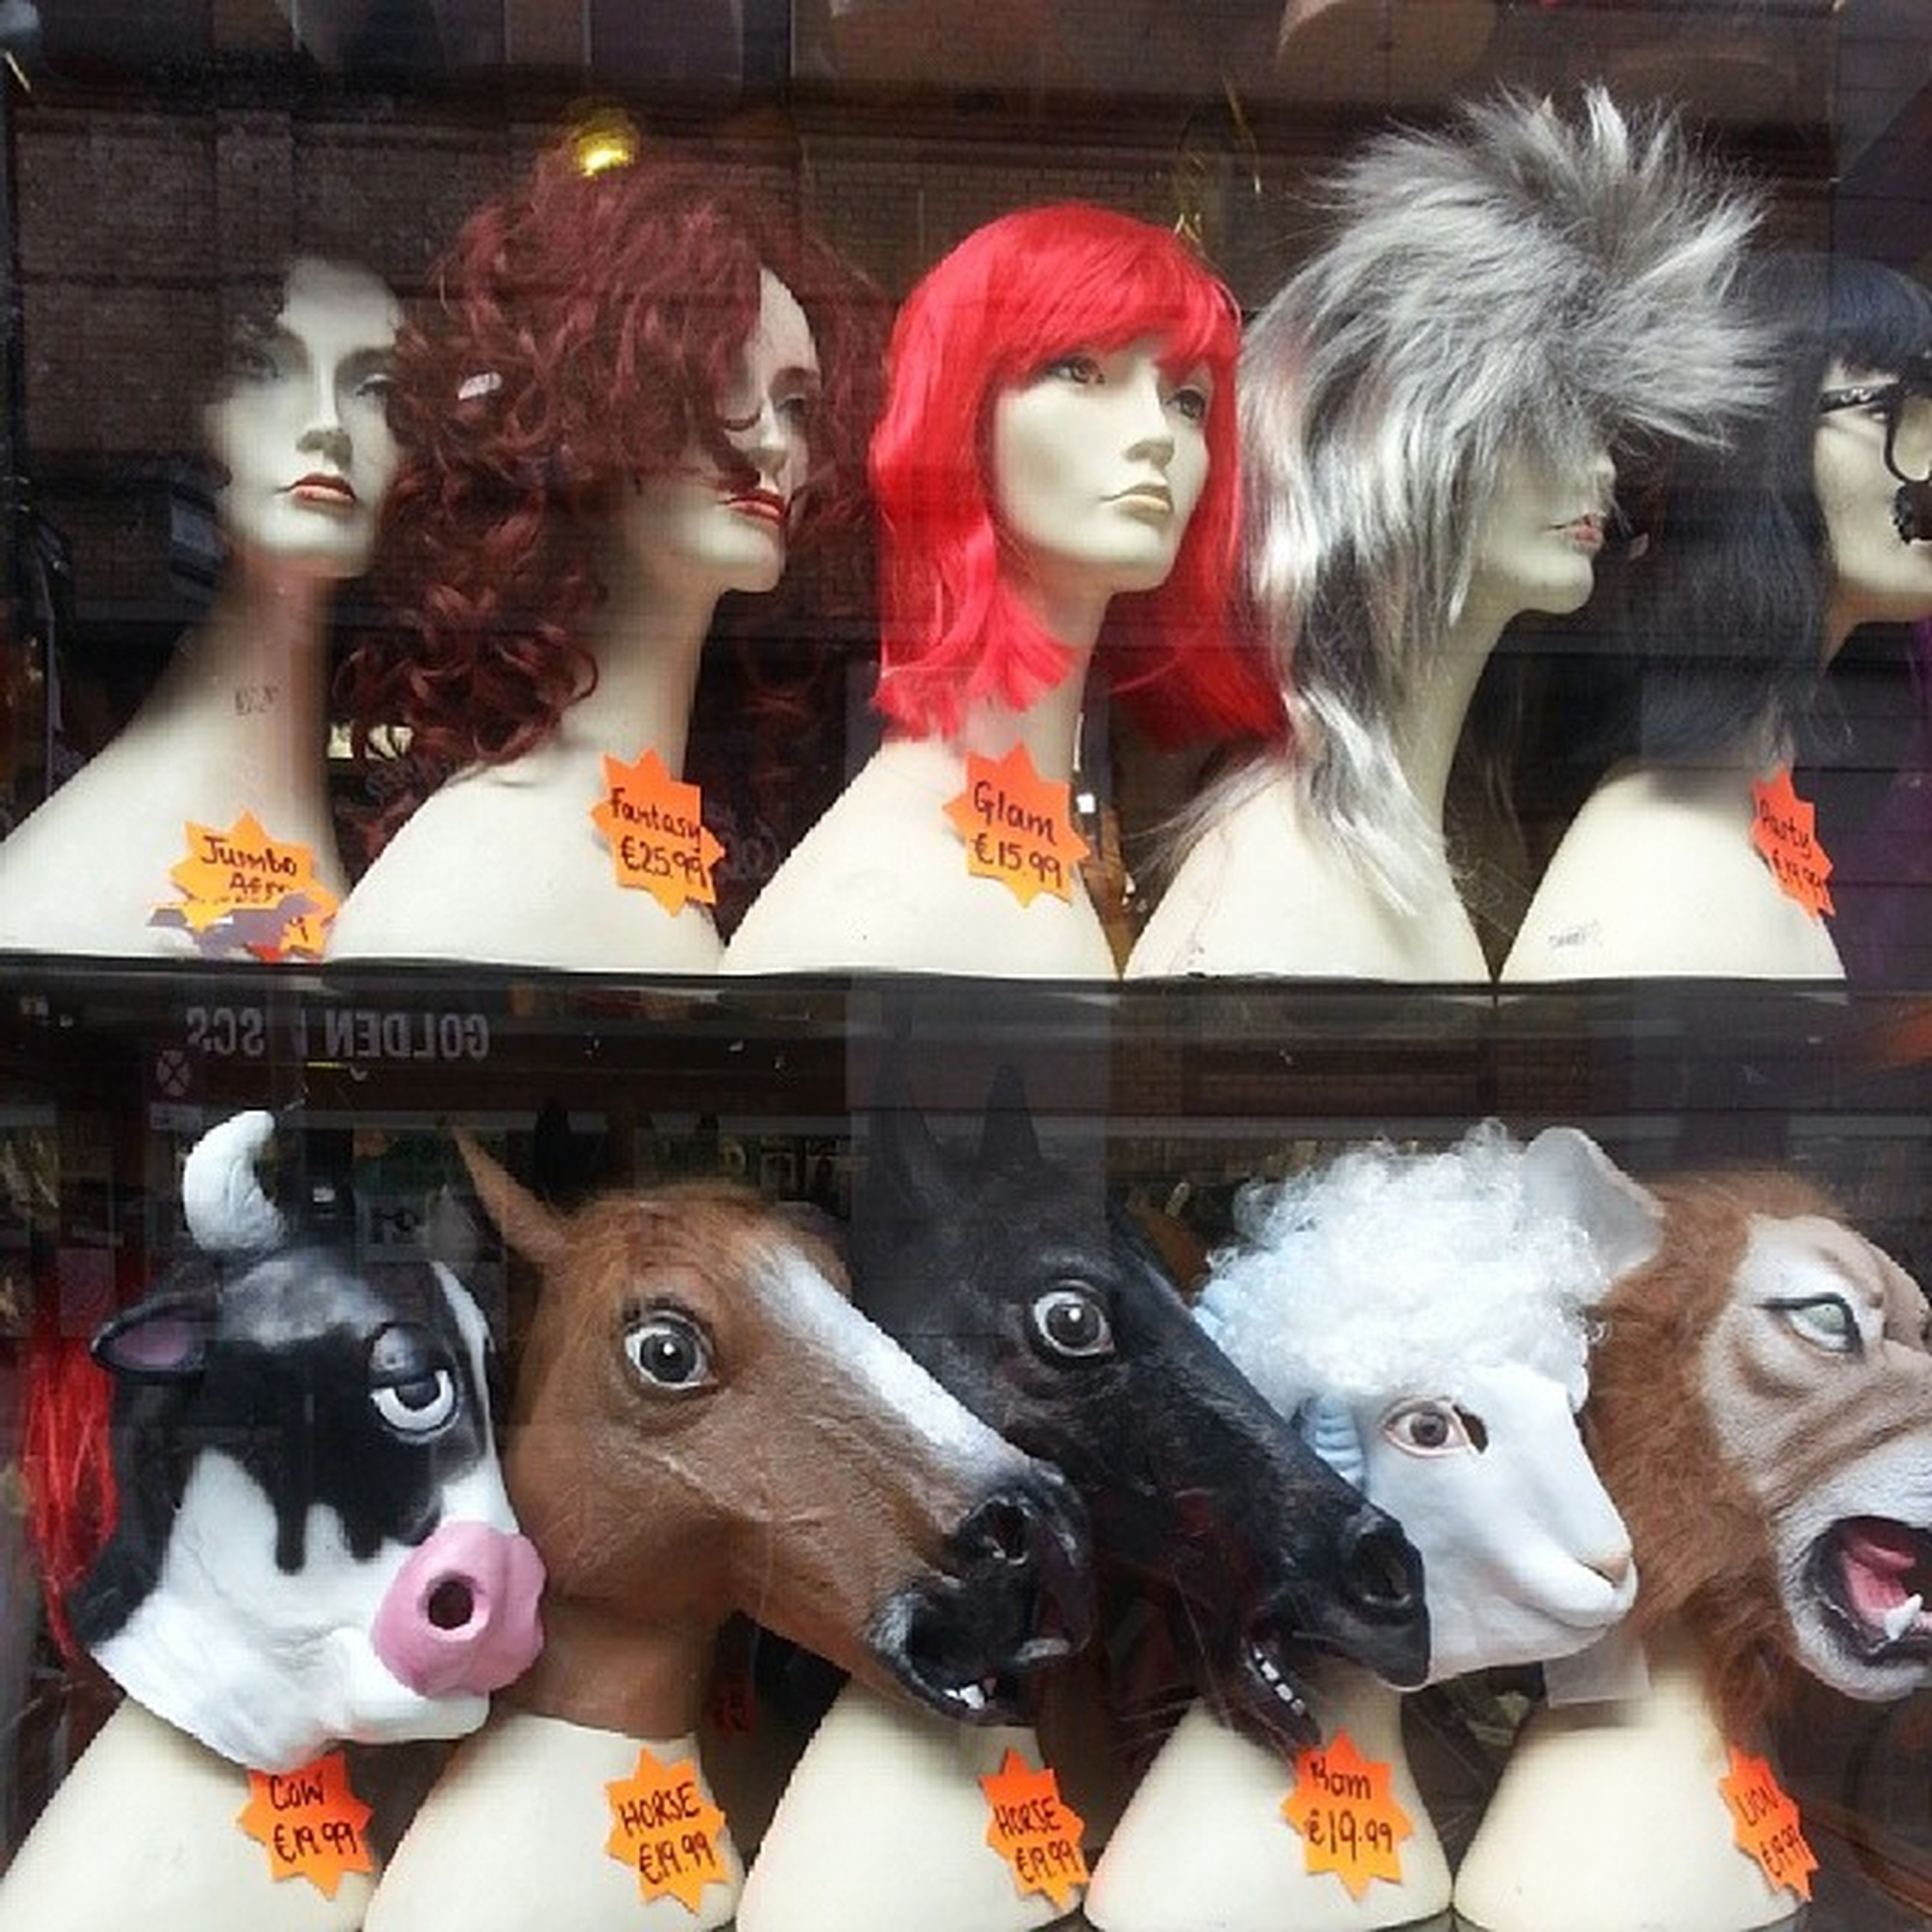 human representation, art, art and craft, creativity, indoors, animal representation, sculpture, statue, figurine, celebration, retail, mannequin, cultures, variation, arts culture and entertainment, store, retail display, mask - disguise